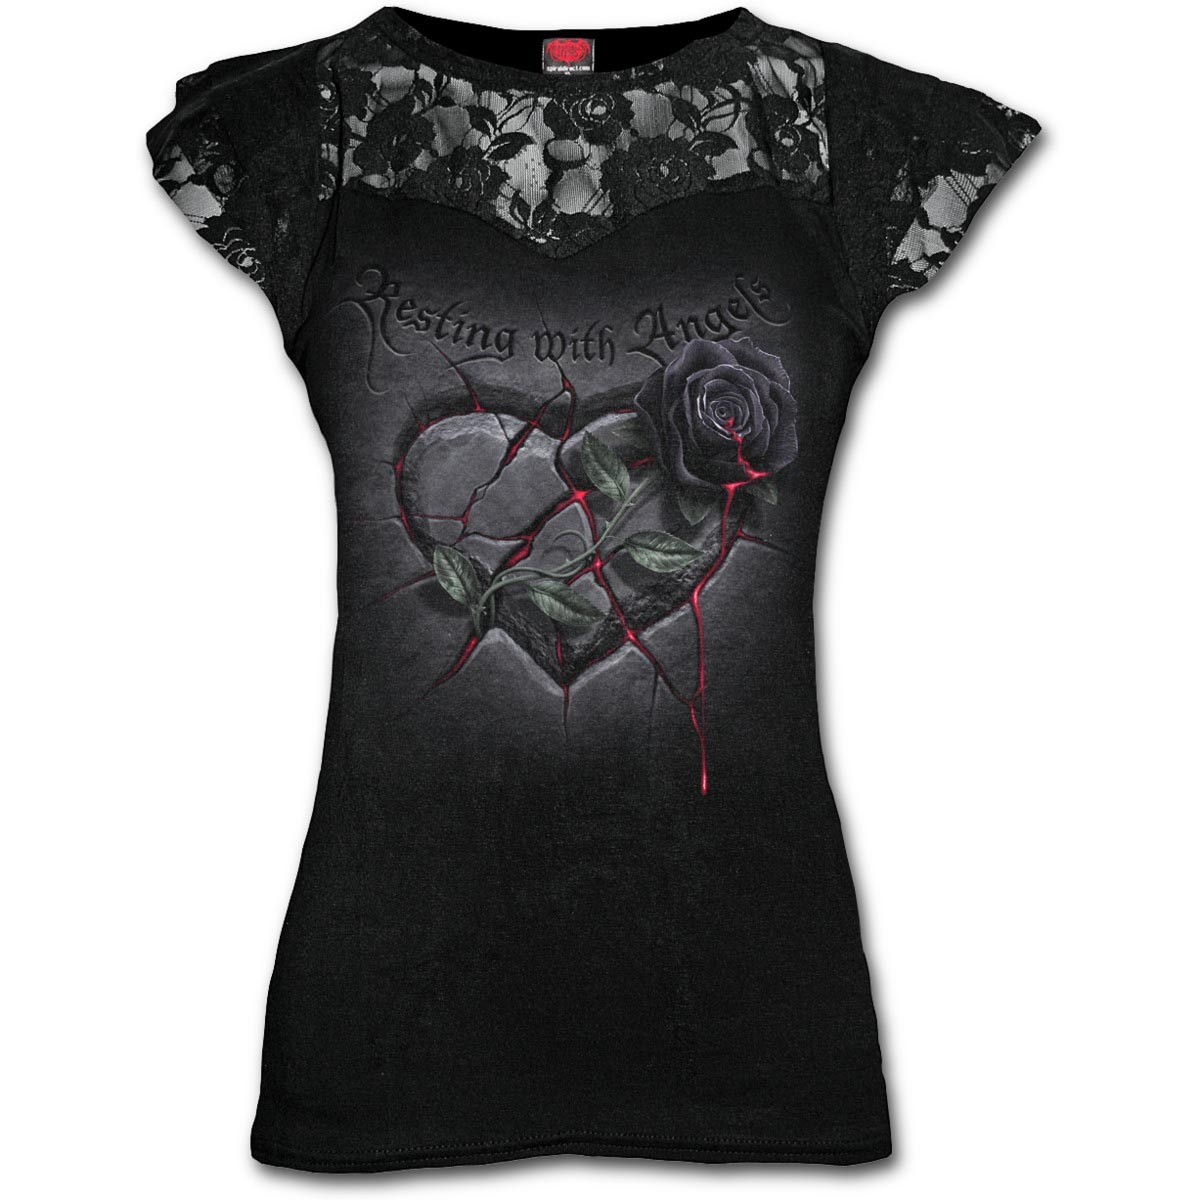 Spiral-Direct-Ladies-Black-Goth-RESTING-With-Angels-Top-Lace-Rose-All-Sizes thumbnail 7